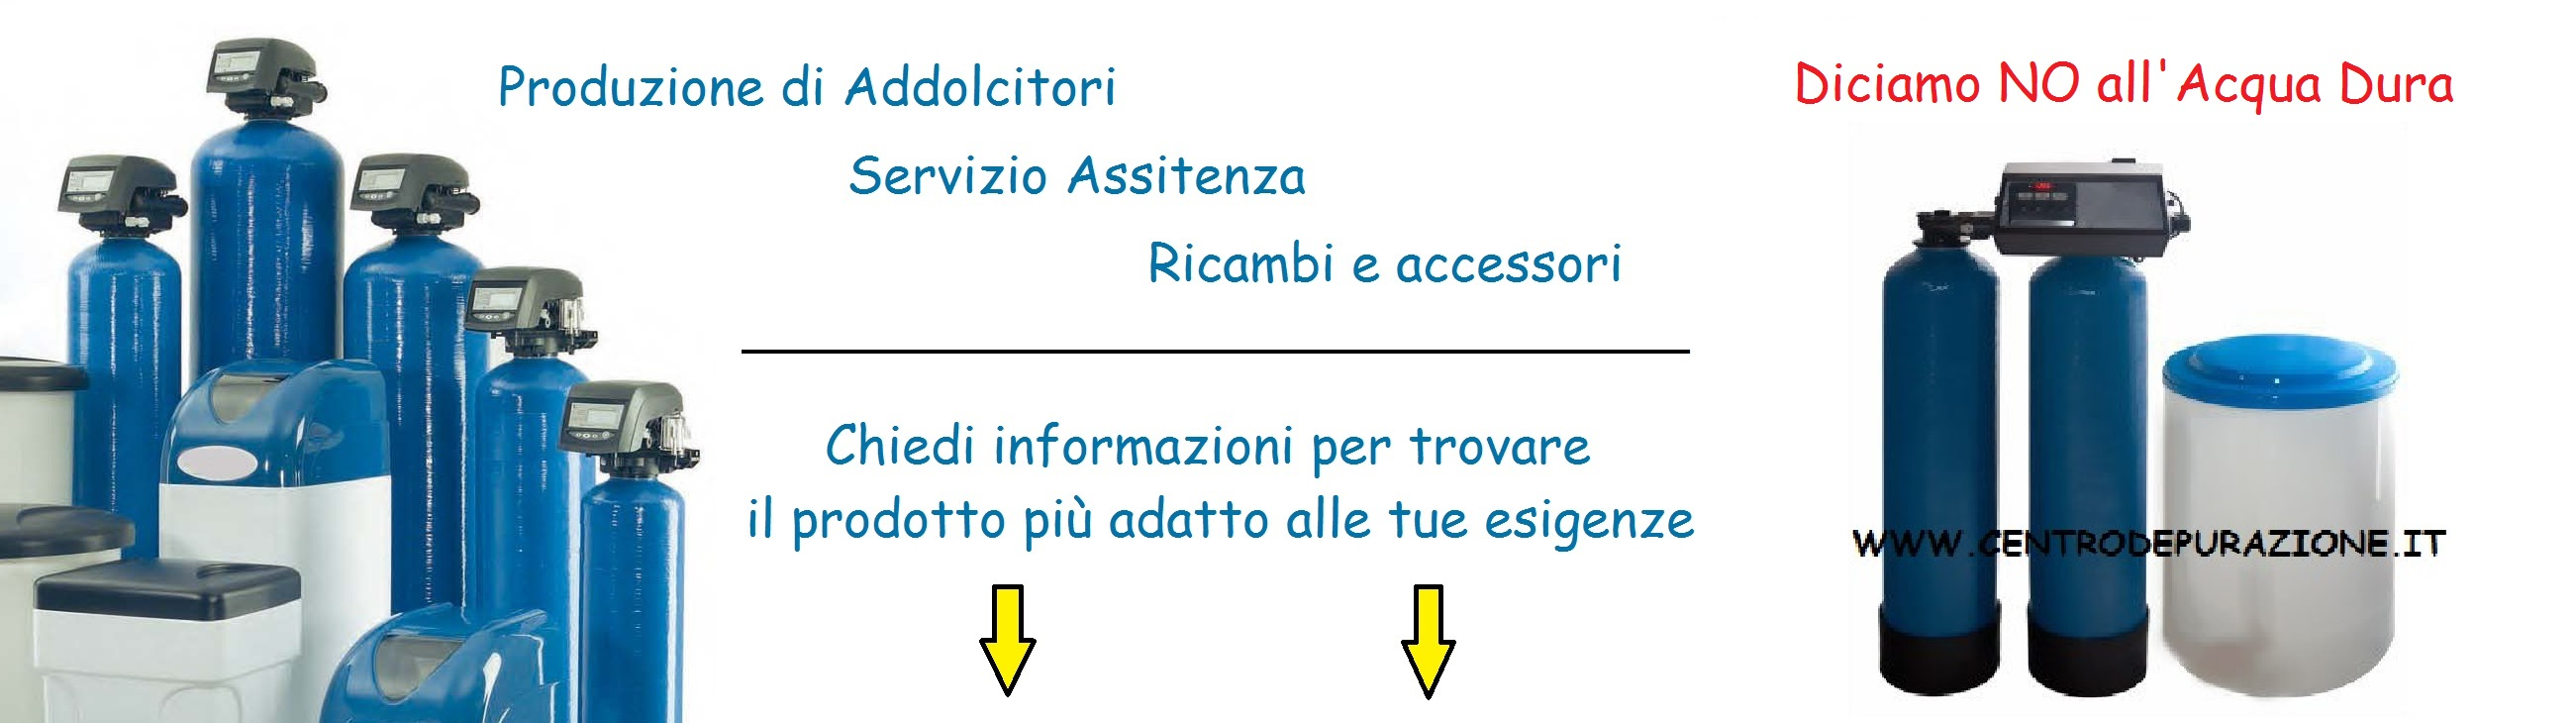 ricambi addolcitore industriale